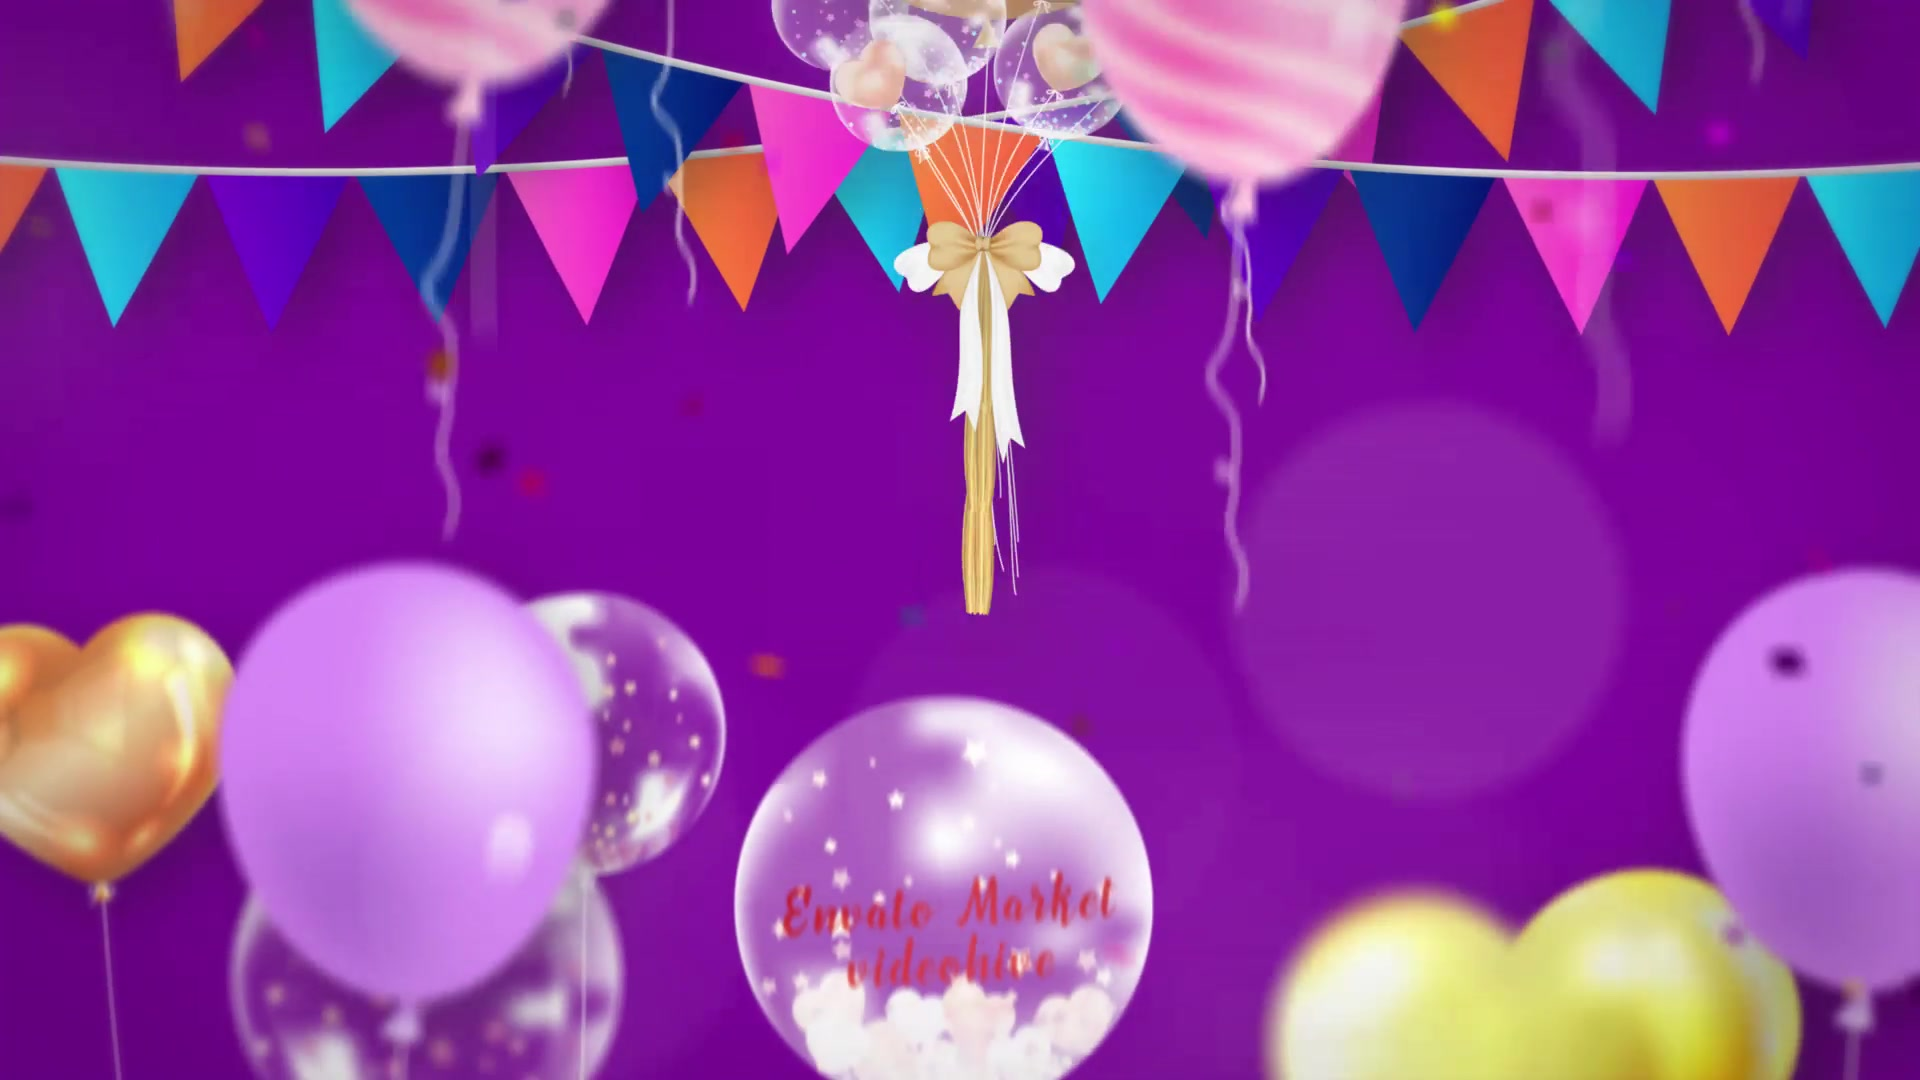 Happy Birthday Opener Videohive 31642133 After Effects Image 4